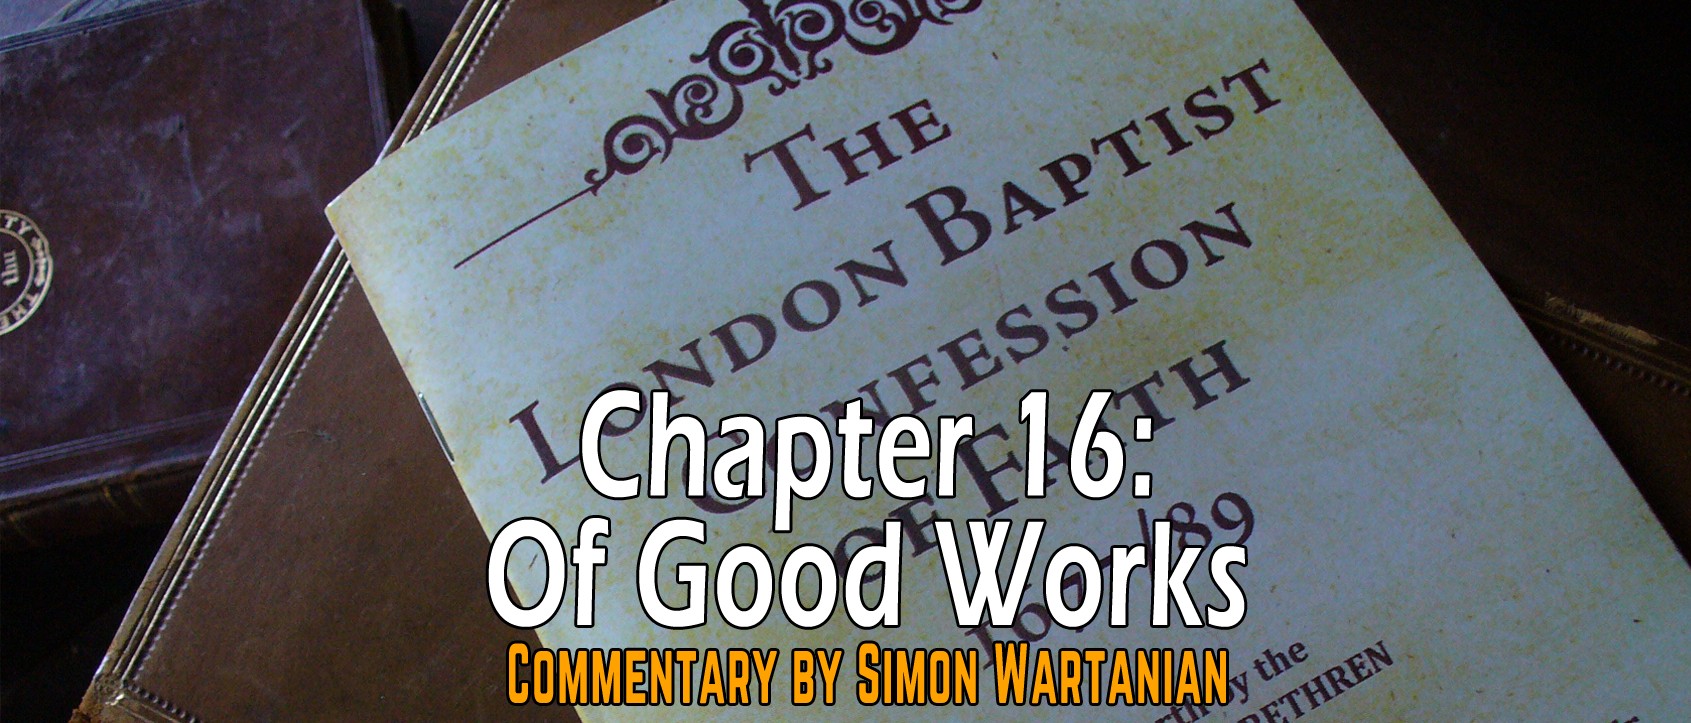 1689 Baptist Confession Chapter 16: Of Good Works - Commentary